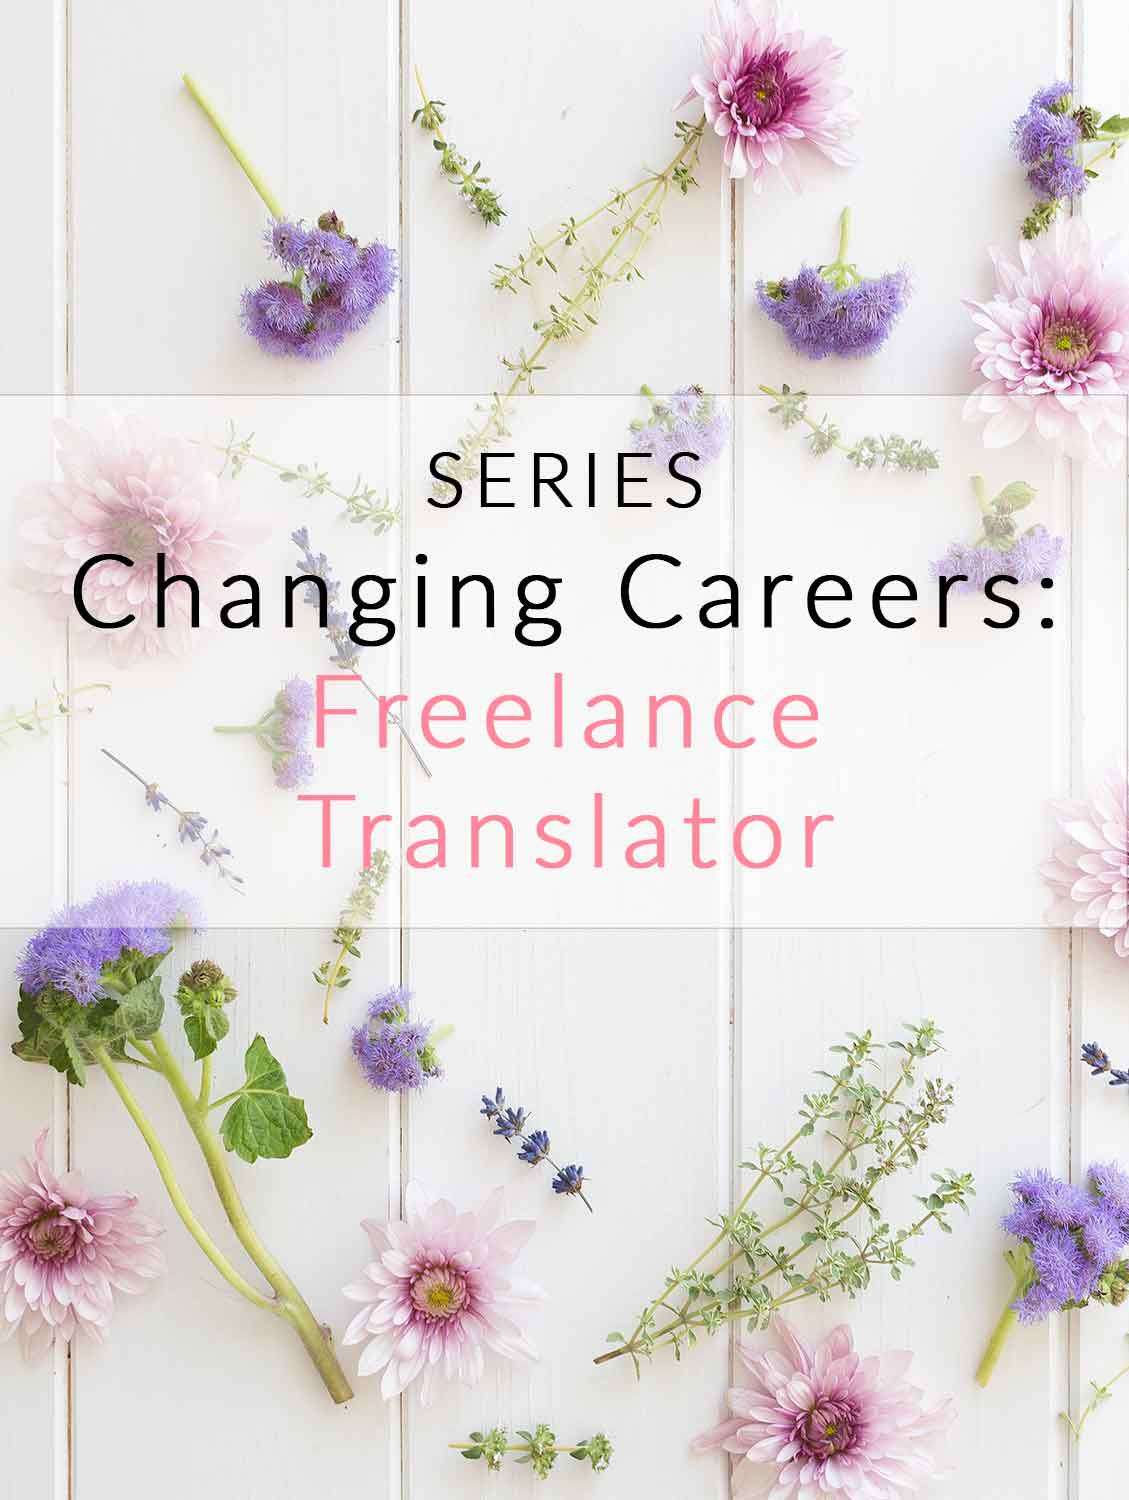 Change Careers: Freelance Translator